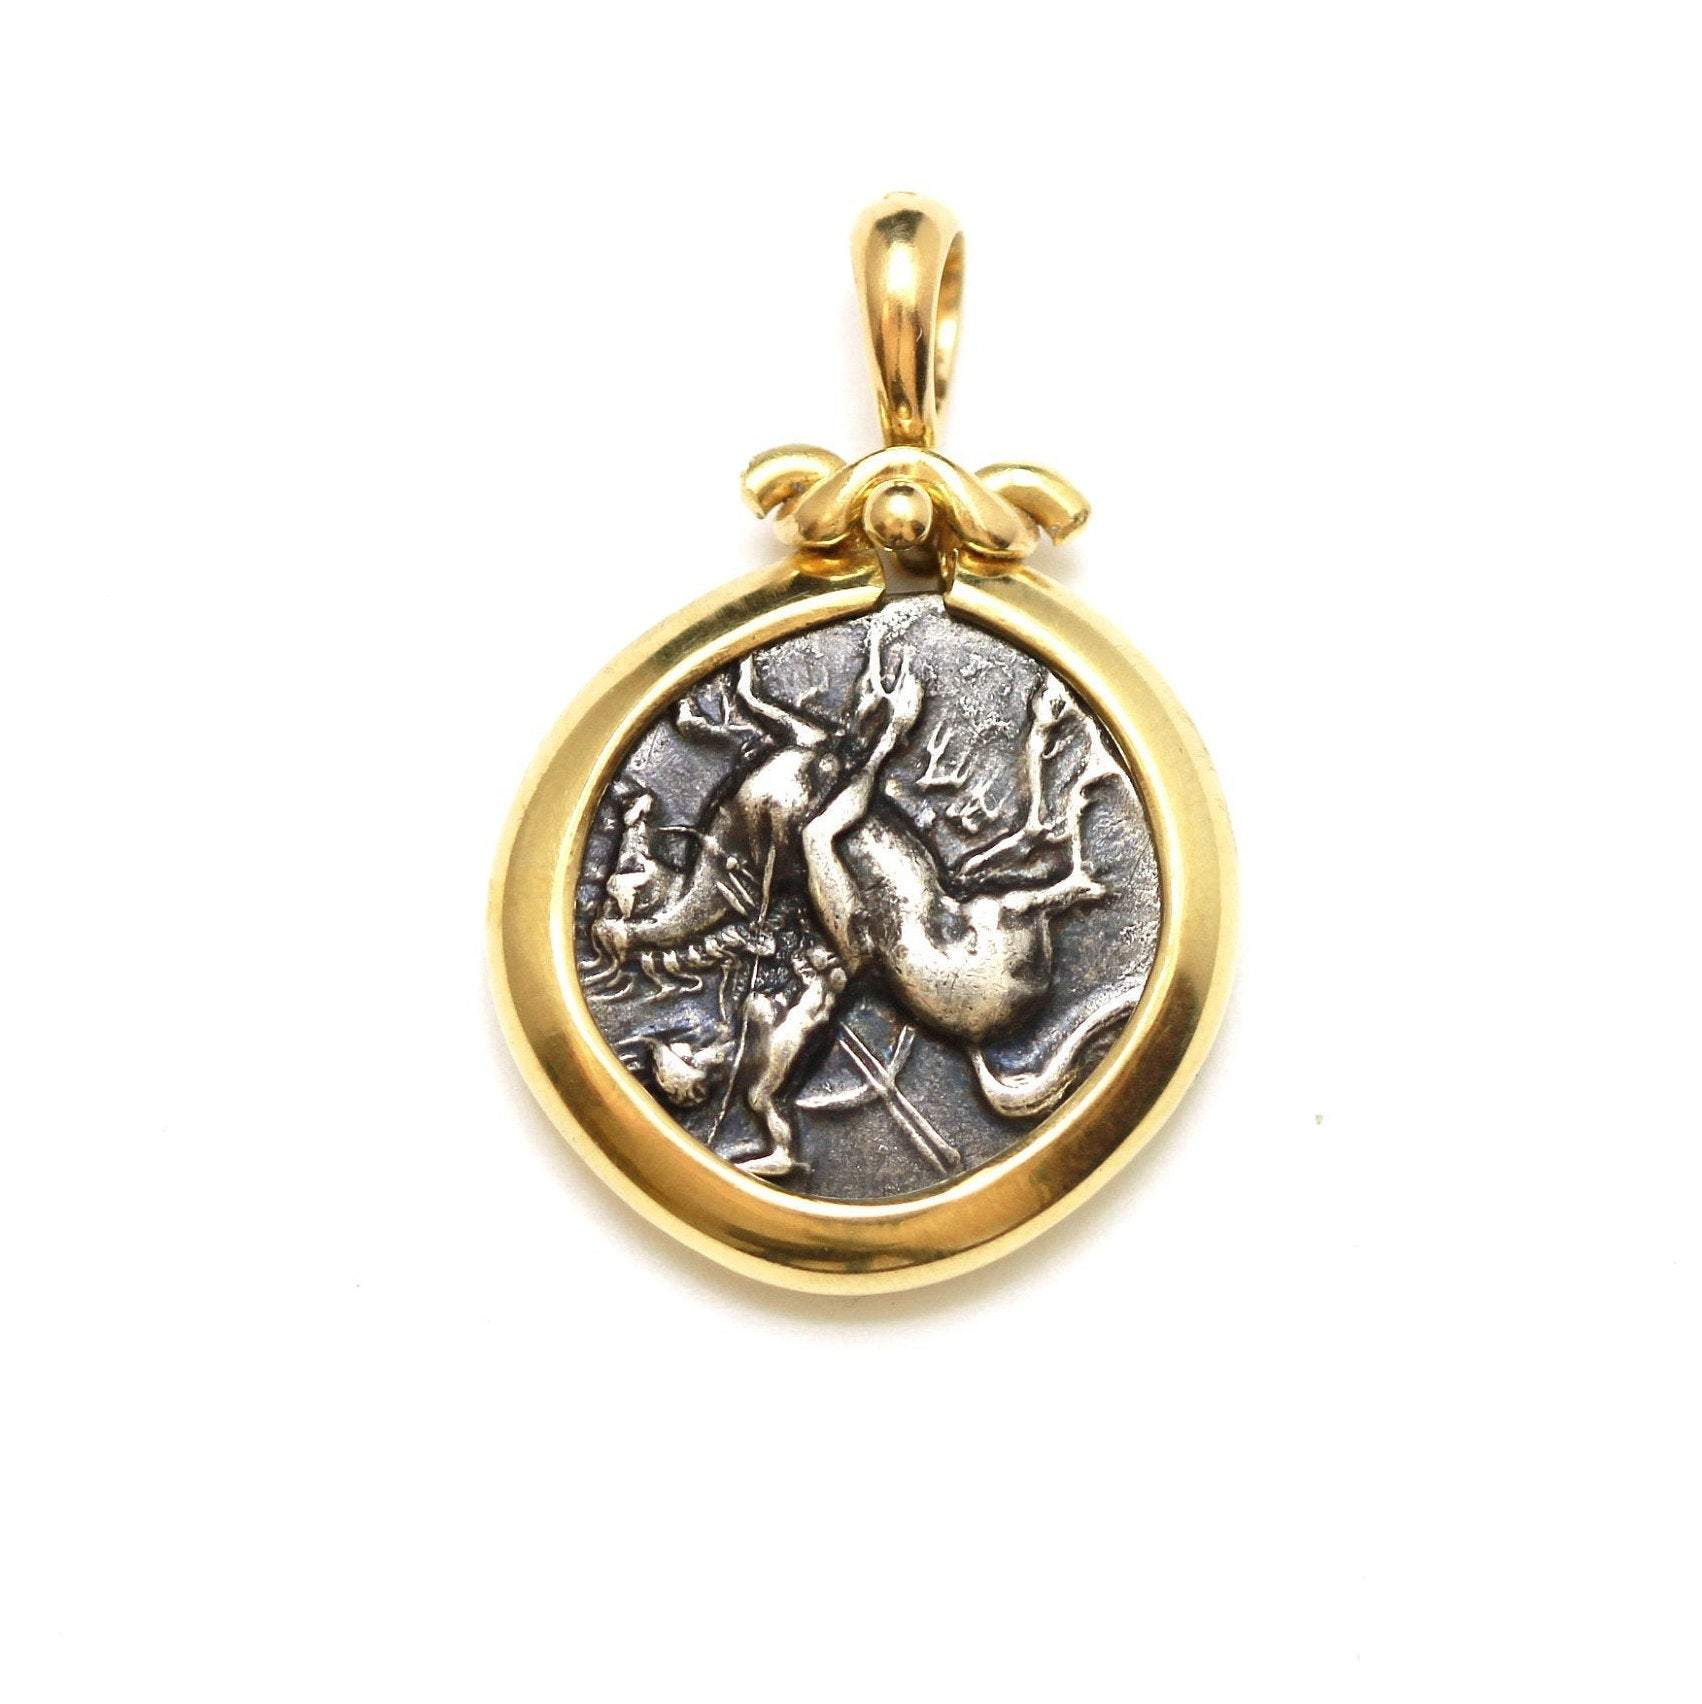 14K Gold Pendant, Boy on a Dolphin, Silver Nomos Coin, ID13392